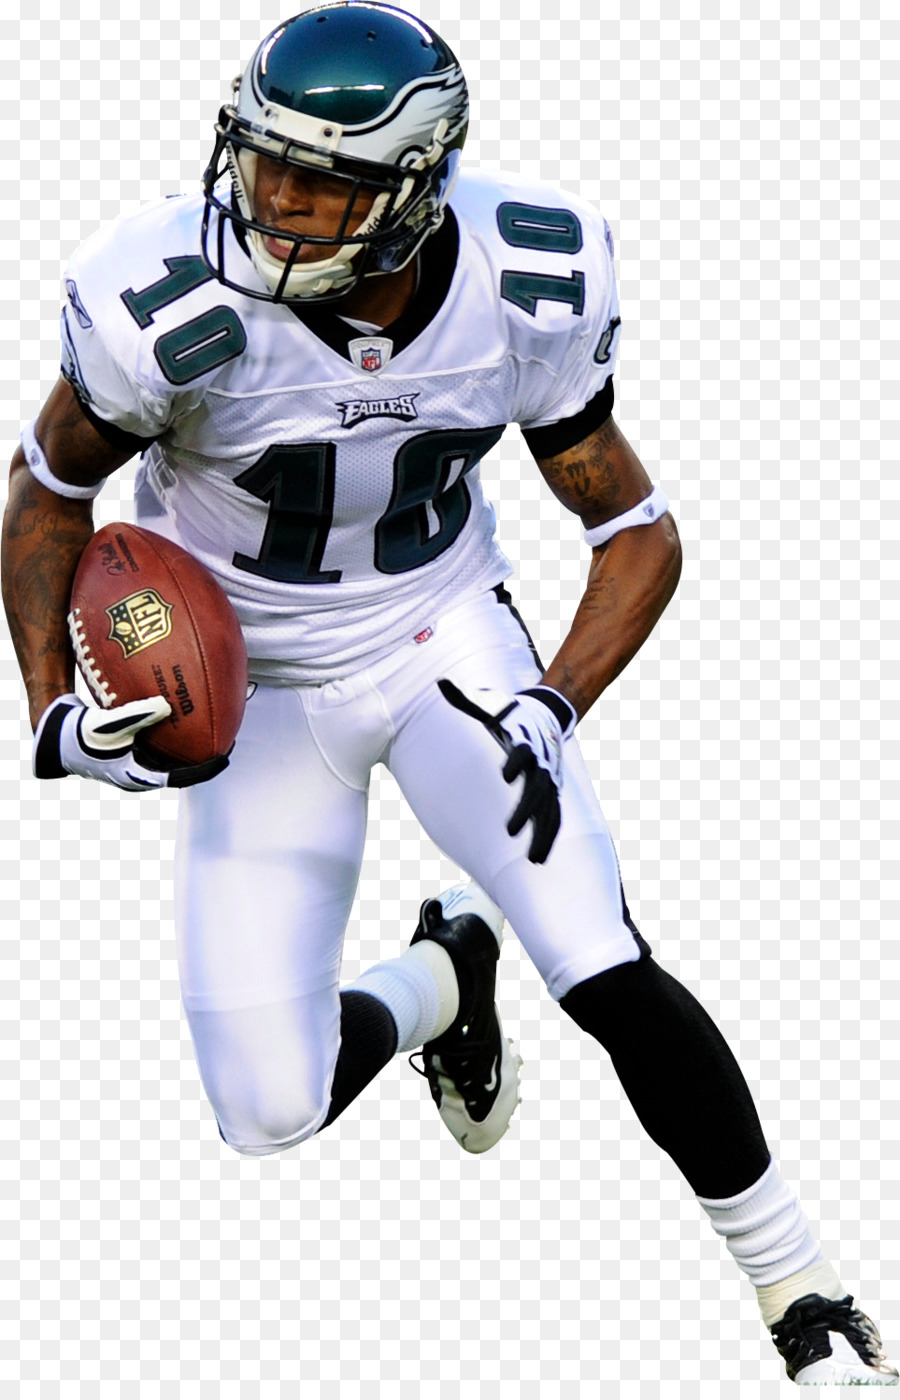 b1ed7fccb91 Philadelphia Eagles, Nfl, American Football, Football Helmet, Protective  Equipment In Gridiron Football PNG